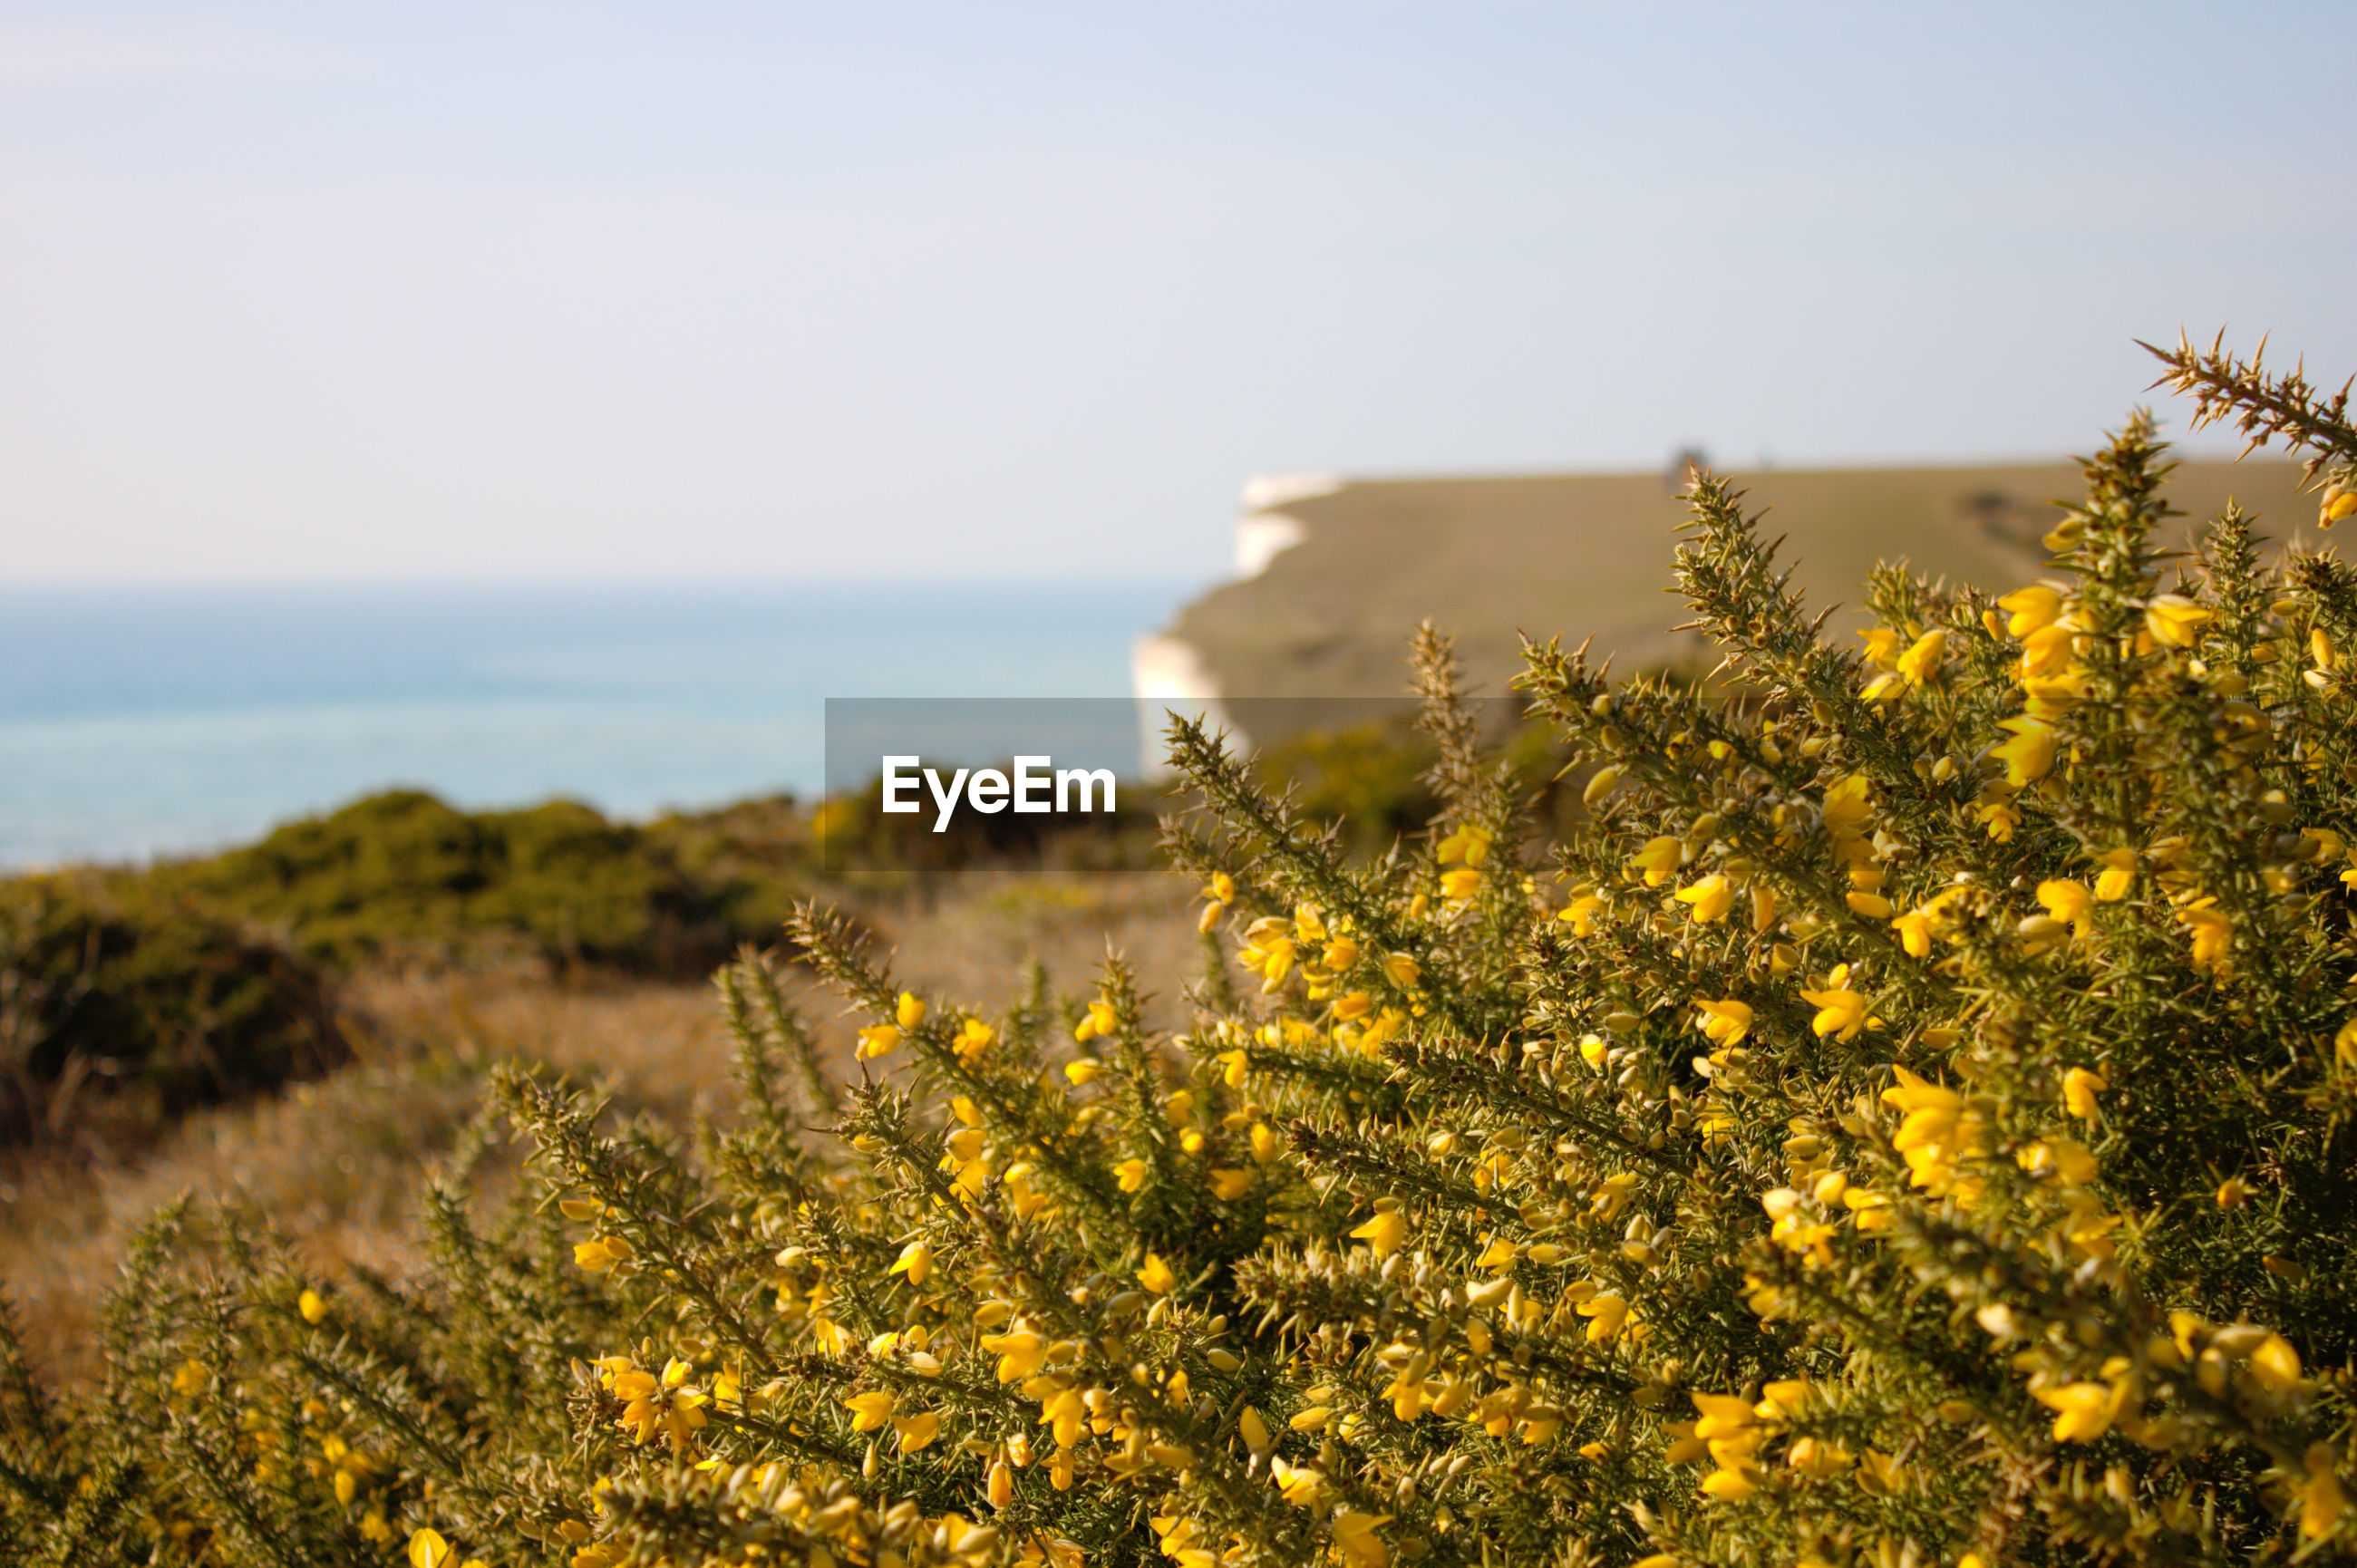 YELLOW FLOWERING PLANT ON FIELD AGAINST SEA